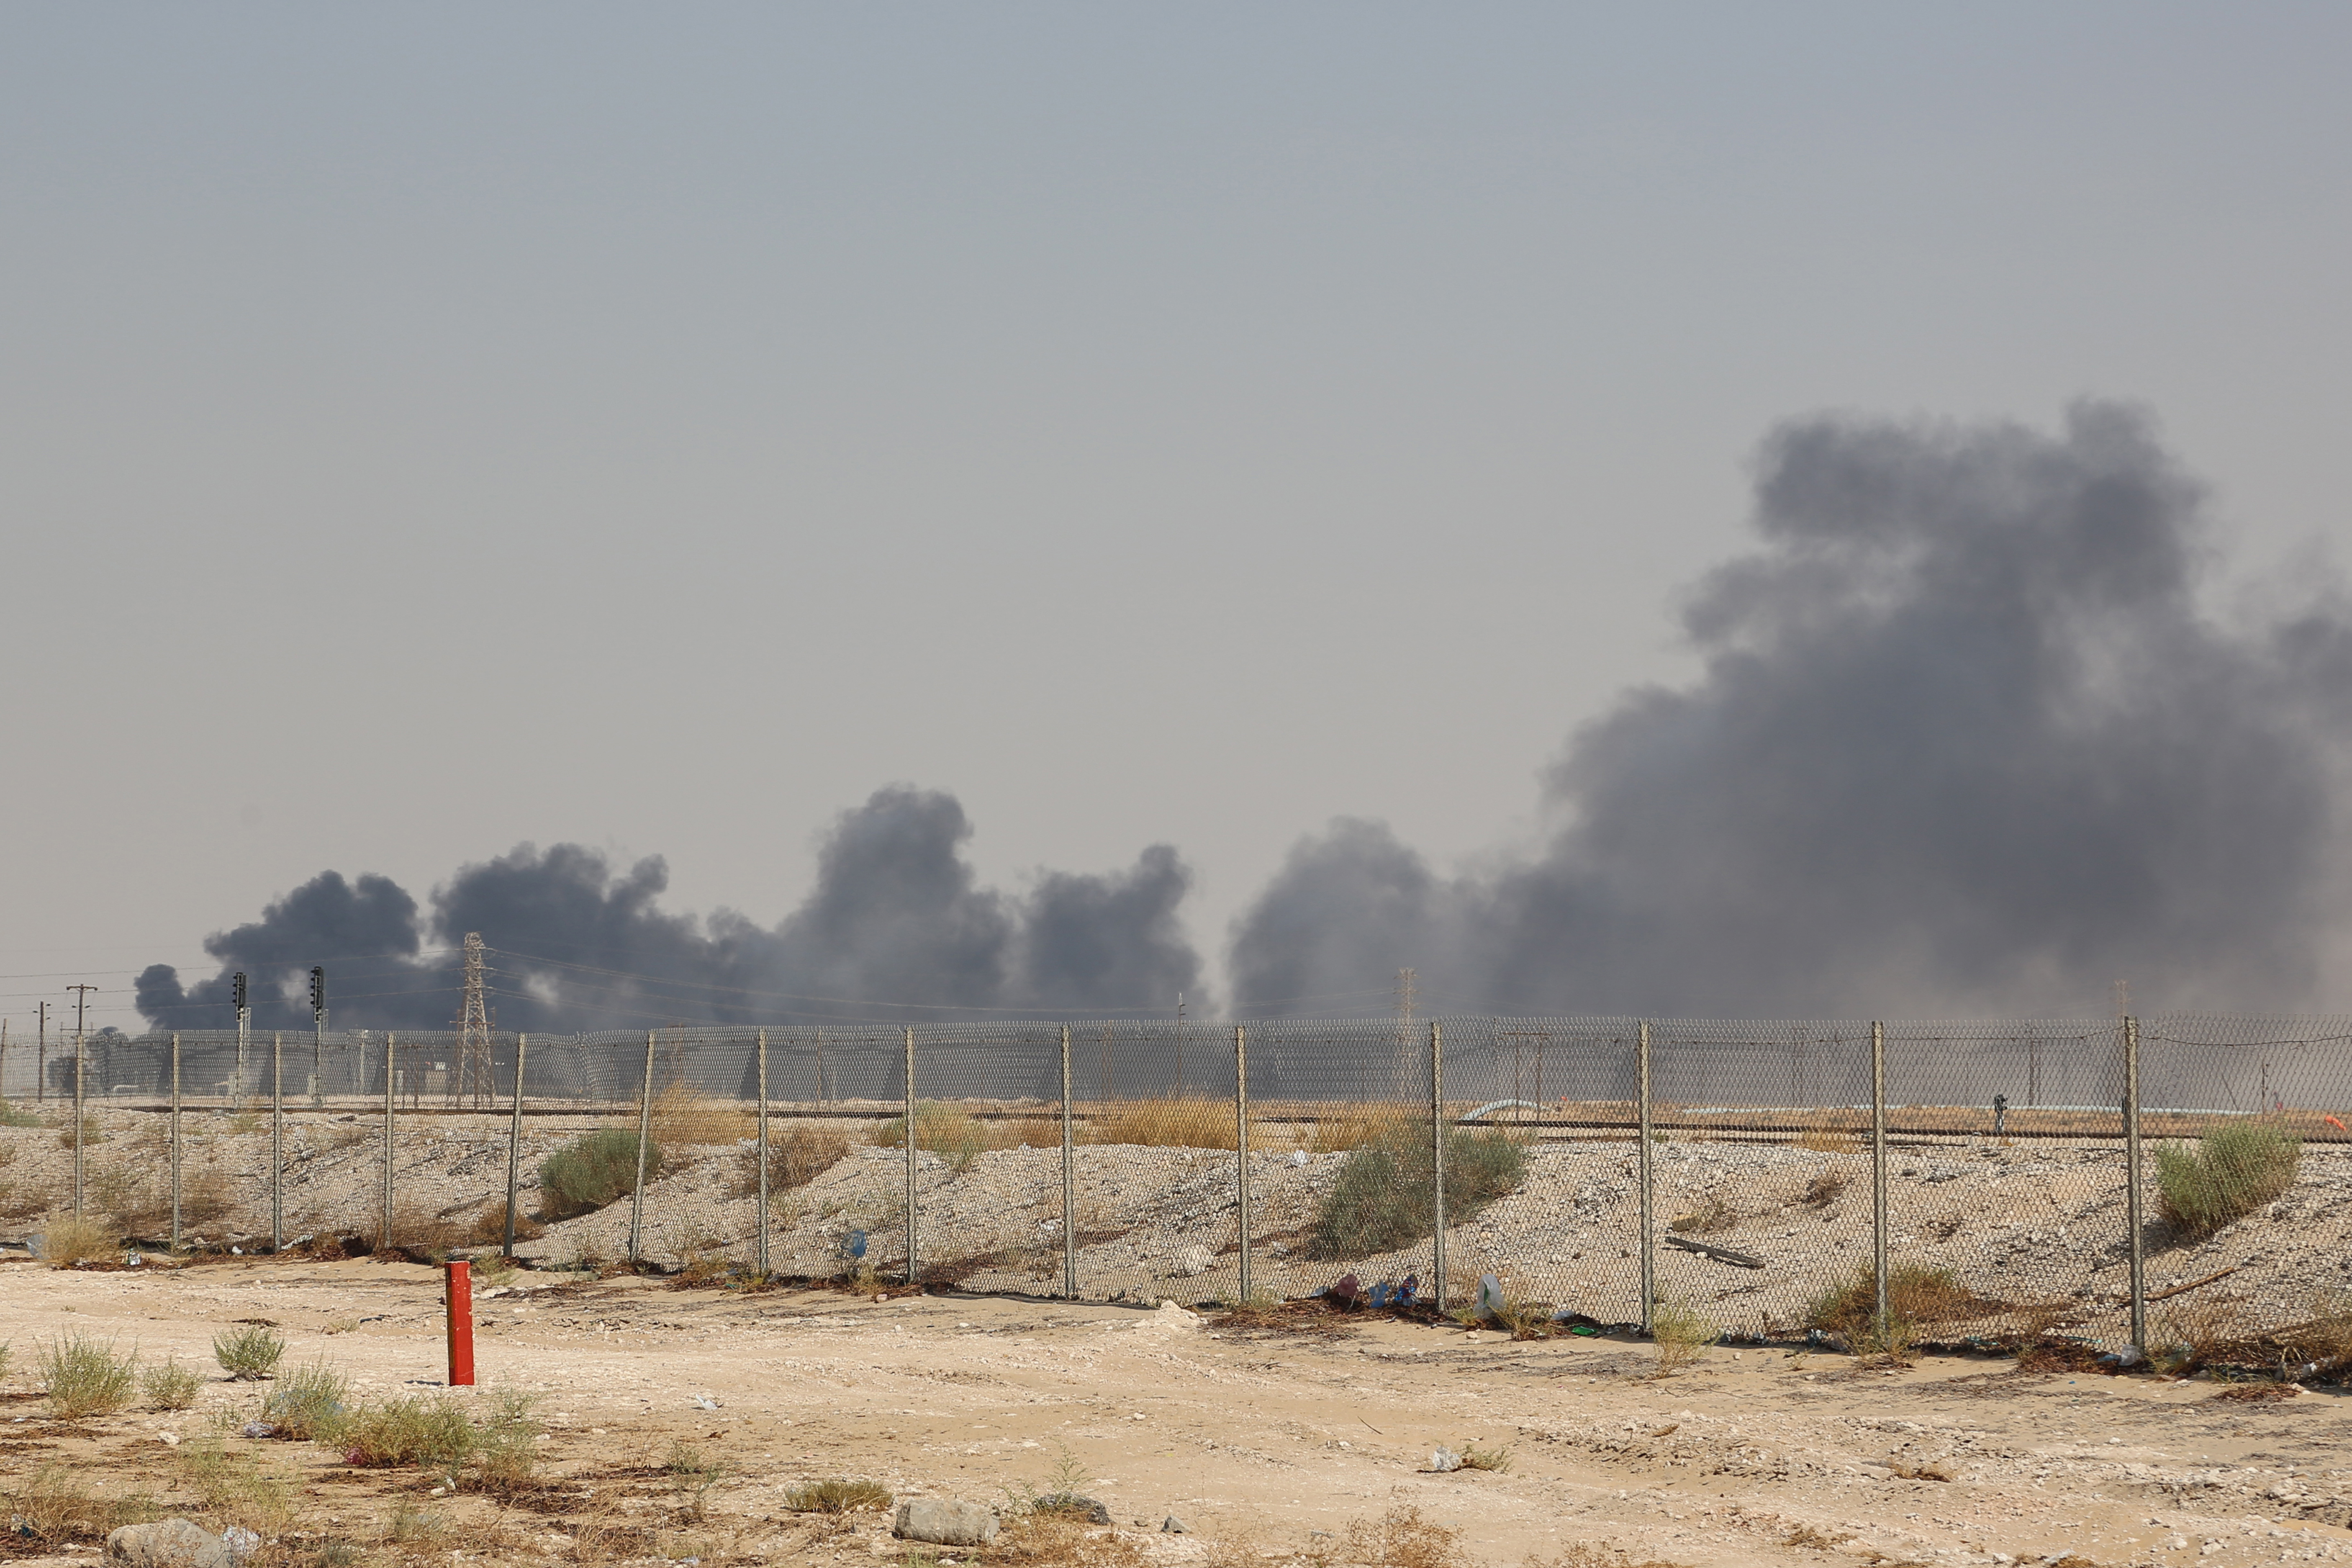 Smoke billows from an Aramco oil facility in Abqaiq about 60km (37 miles) southwest of Dhahran in Saudi Arabia's eastern province on September 14, 2019. Drone attacks sparked fires at two Saudi Aramco oil facilities on the day.